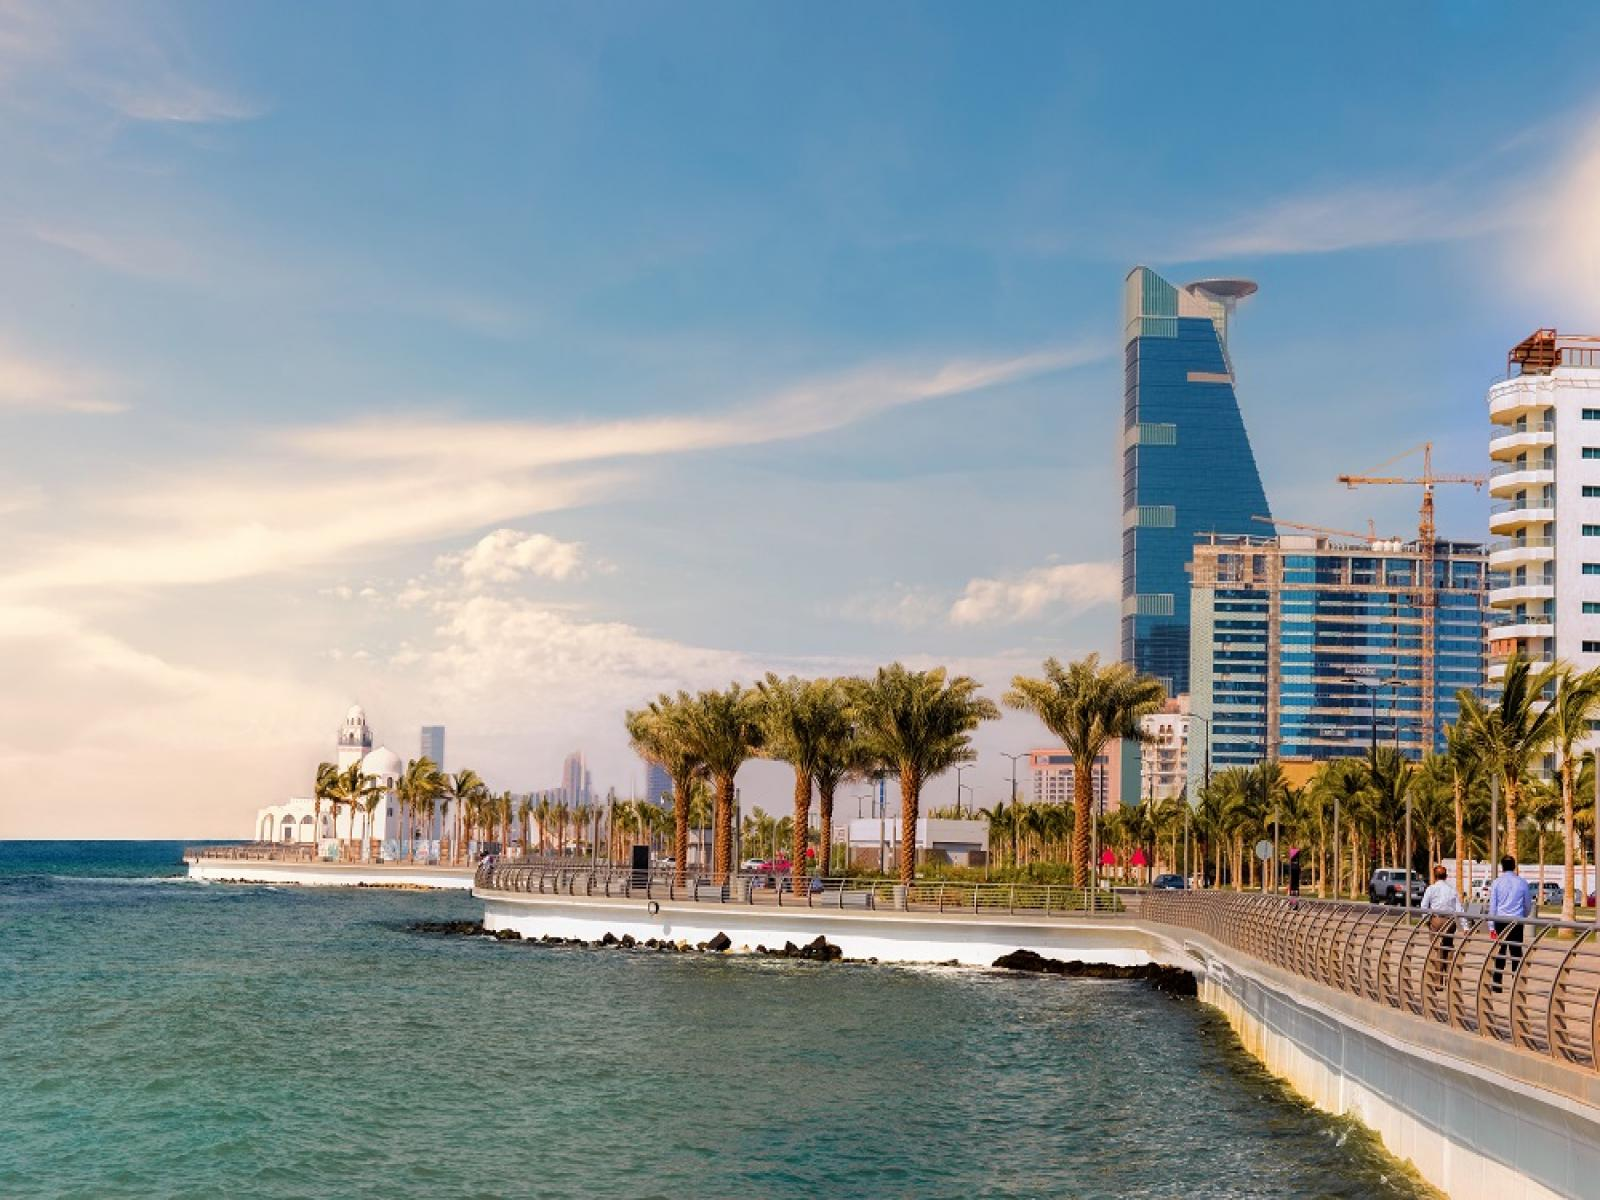 sunny photo of the coast line with buildings in Jeddah